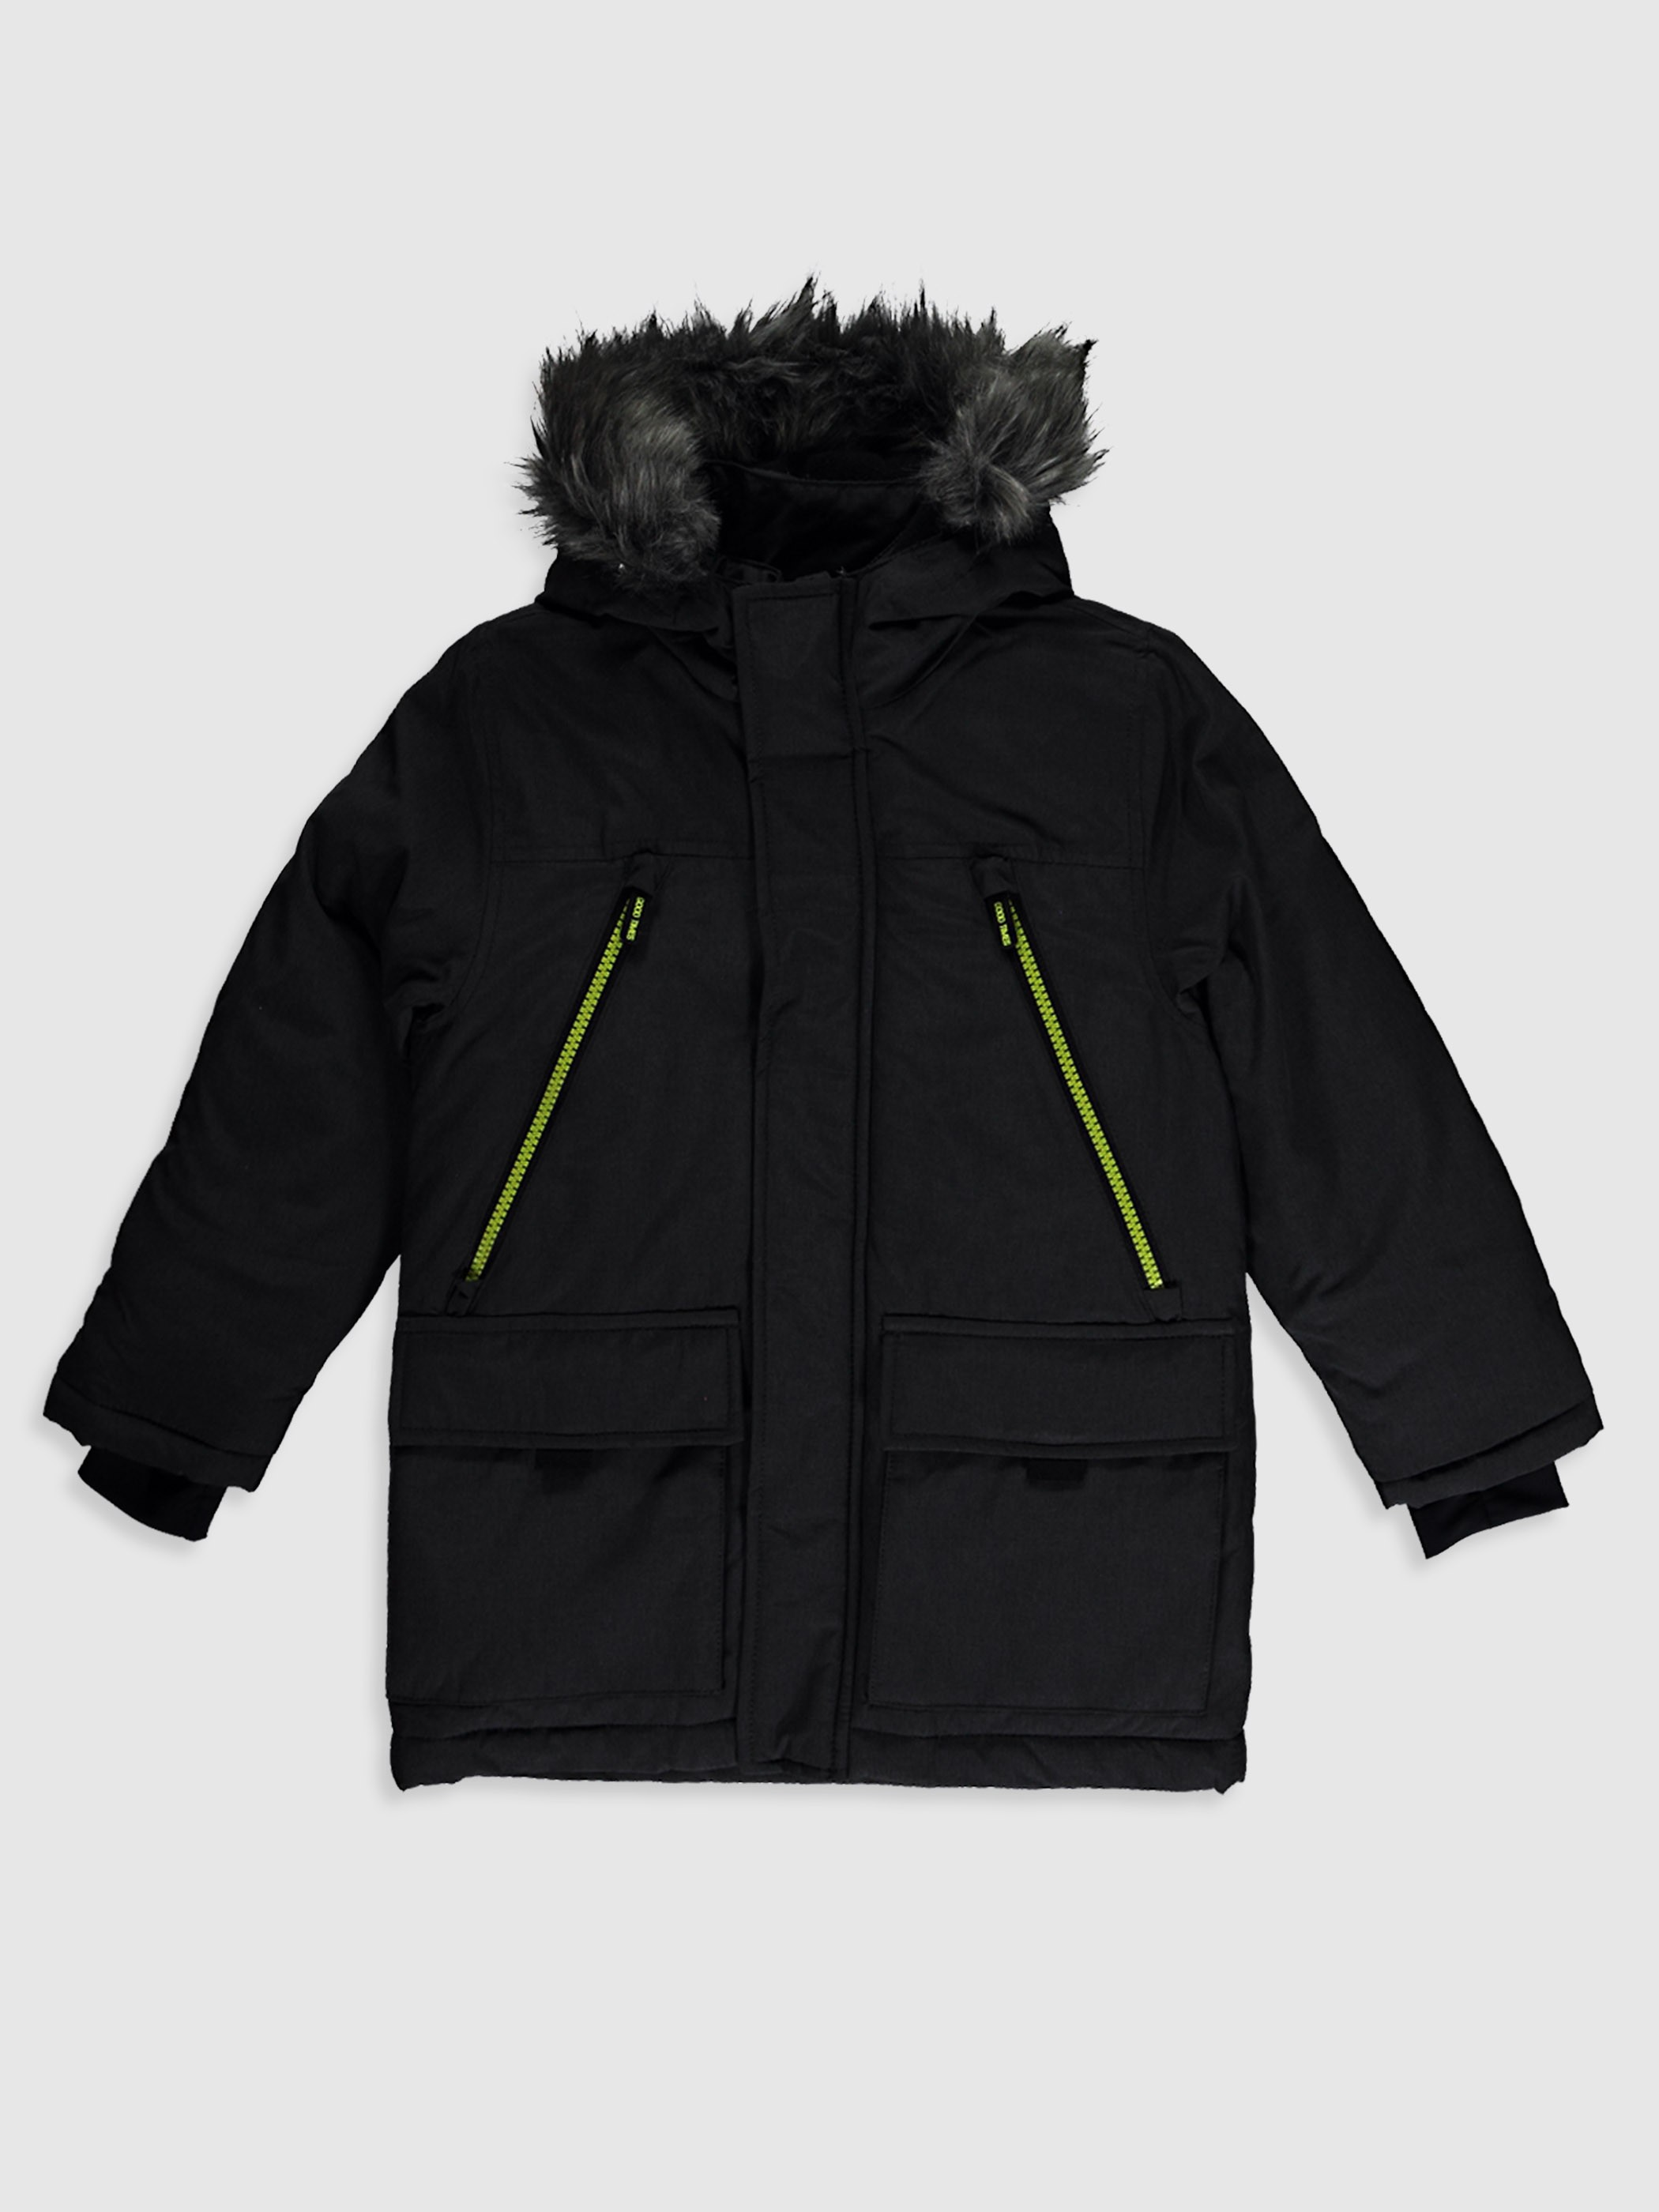 ANTHRACITE - Boy's Heavy Short Coat with Hood - 0W1642Z4